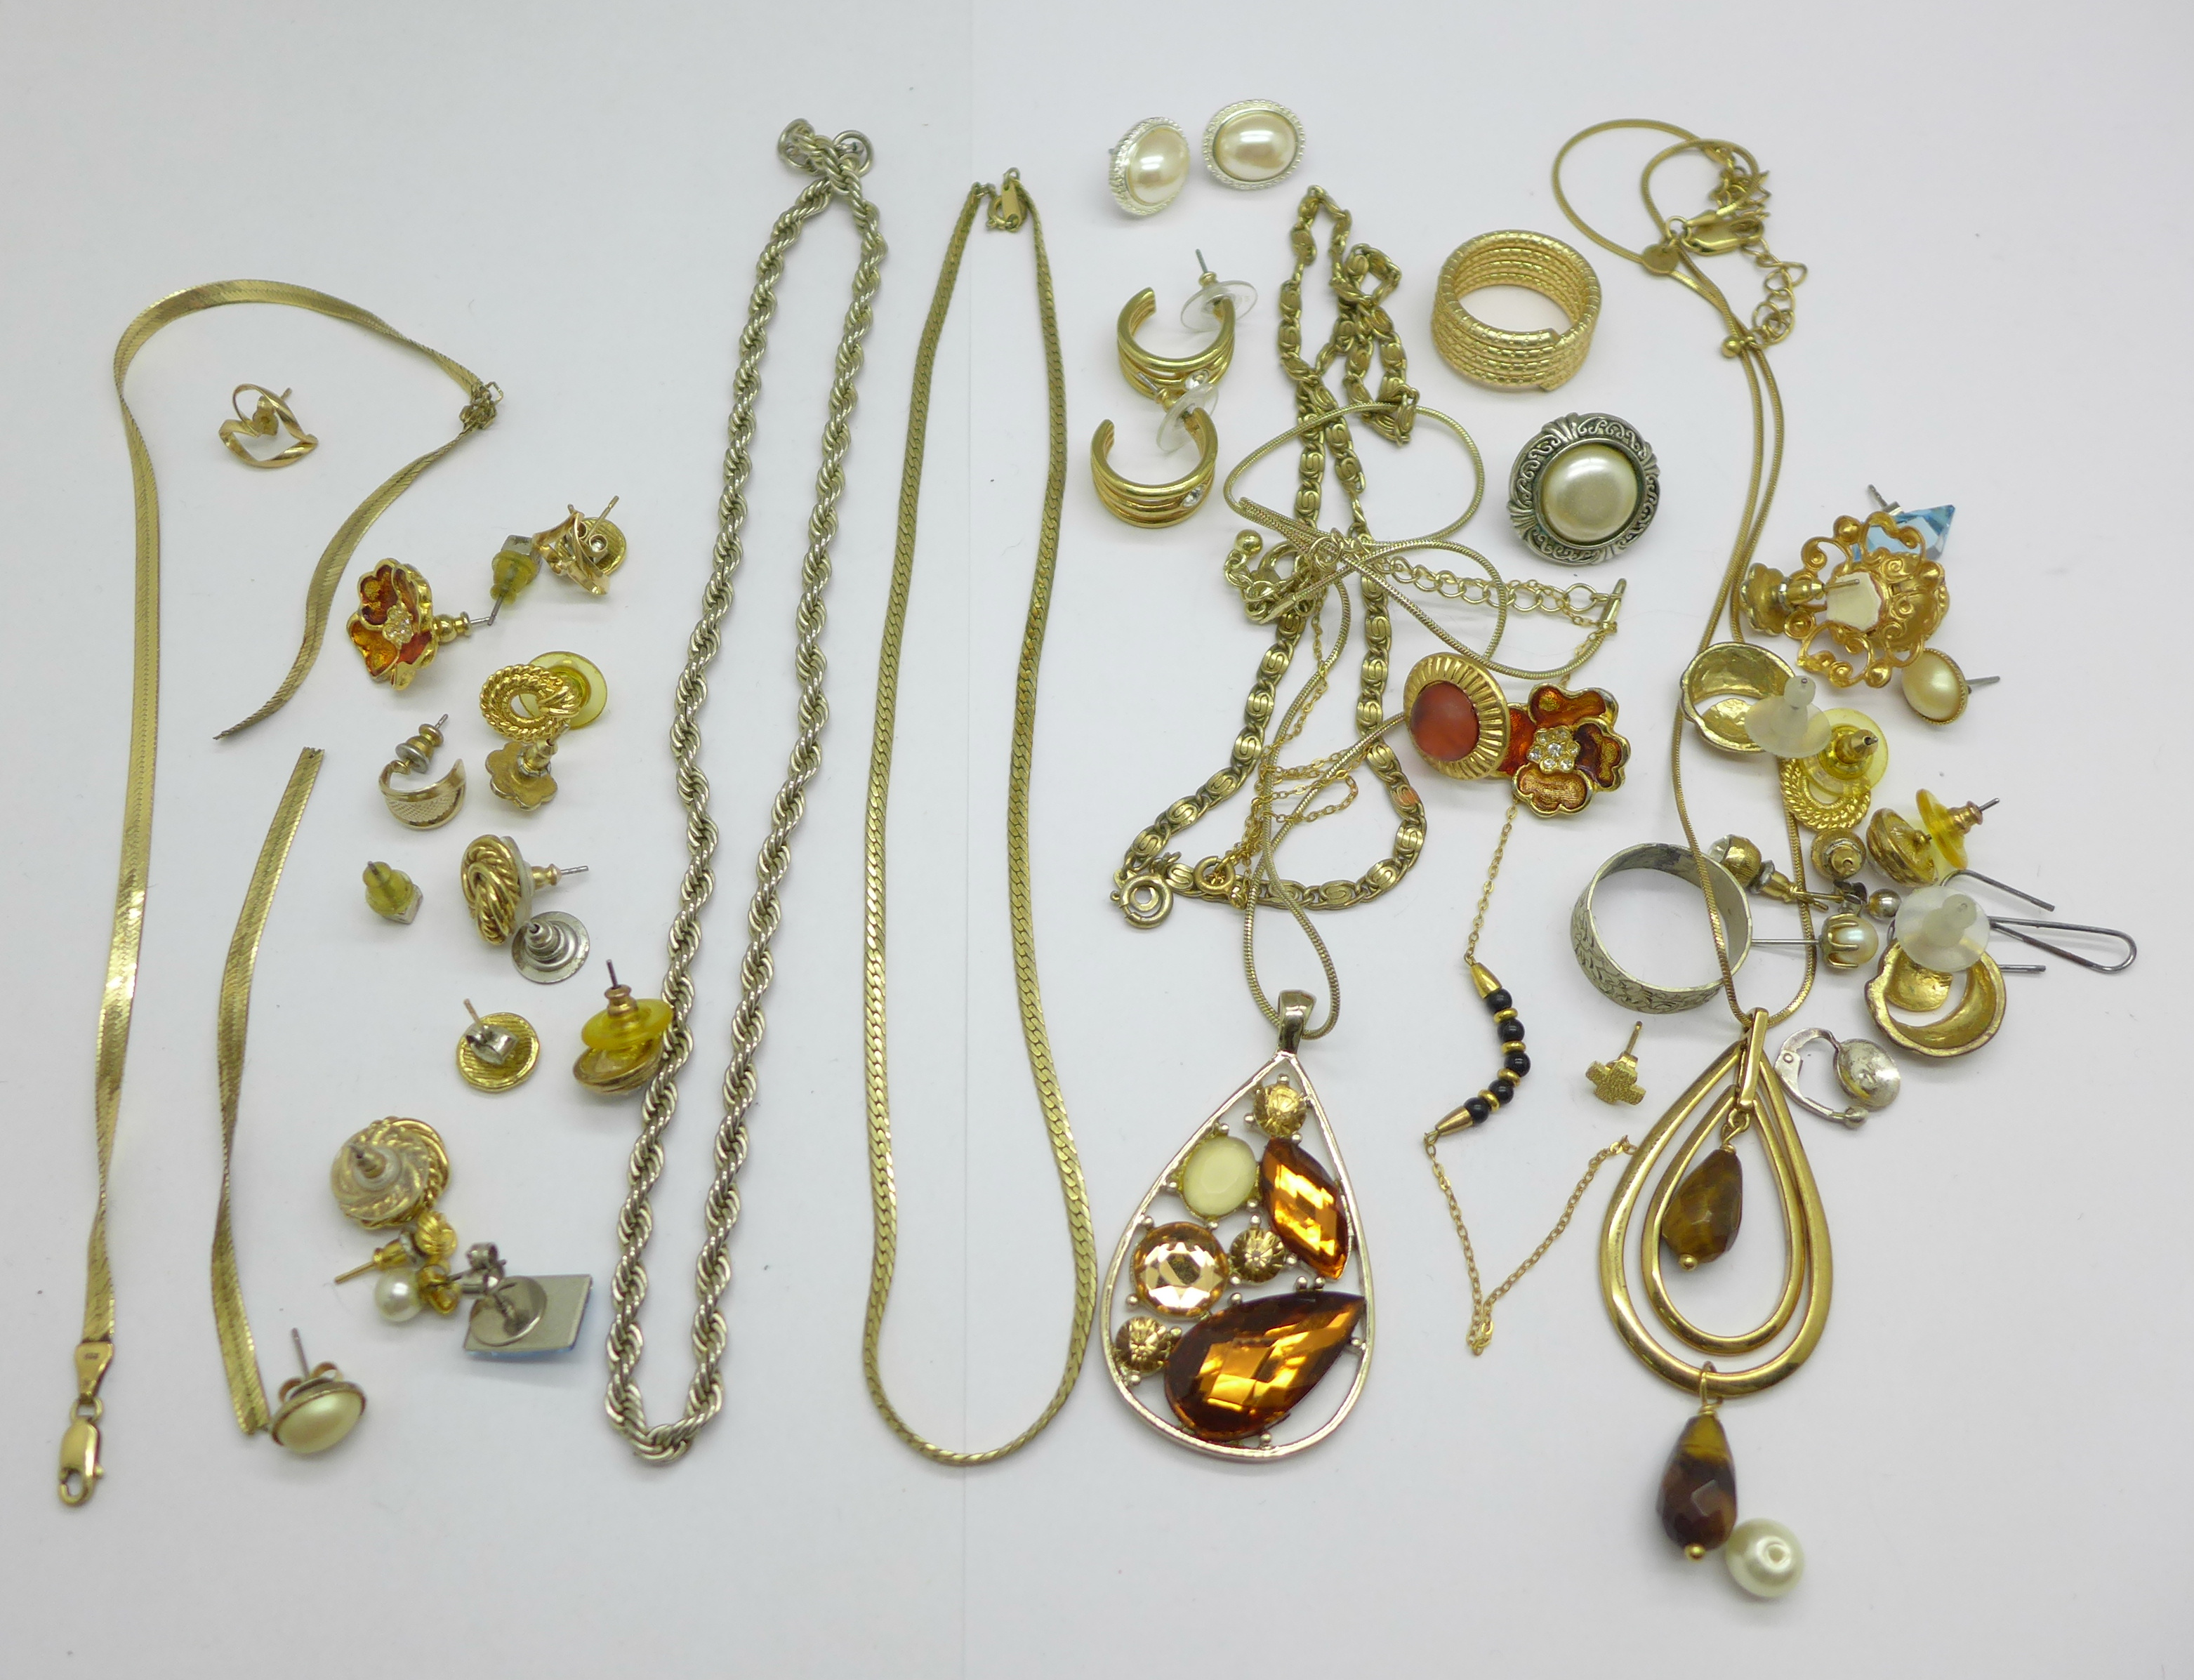 A 9ct gold chain, a/f, and a single 9ct gold earring and costume jewellery, a/f, 5.1g of 9ct gold